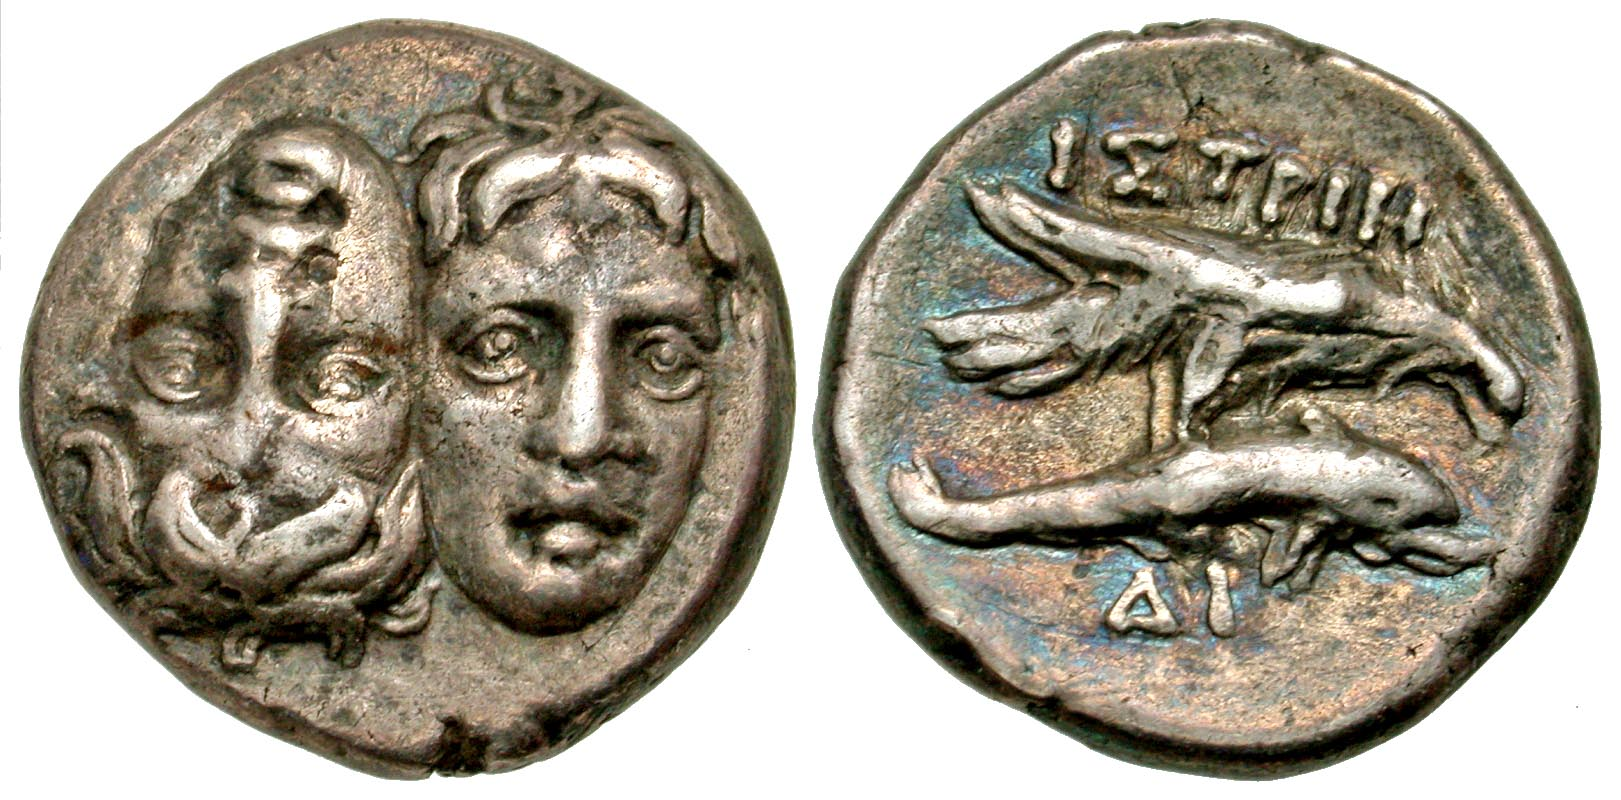 Moesia, Istros. civic issue. 400-350 B.C. AR stater. From the D. Thomas Collection.